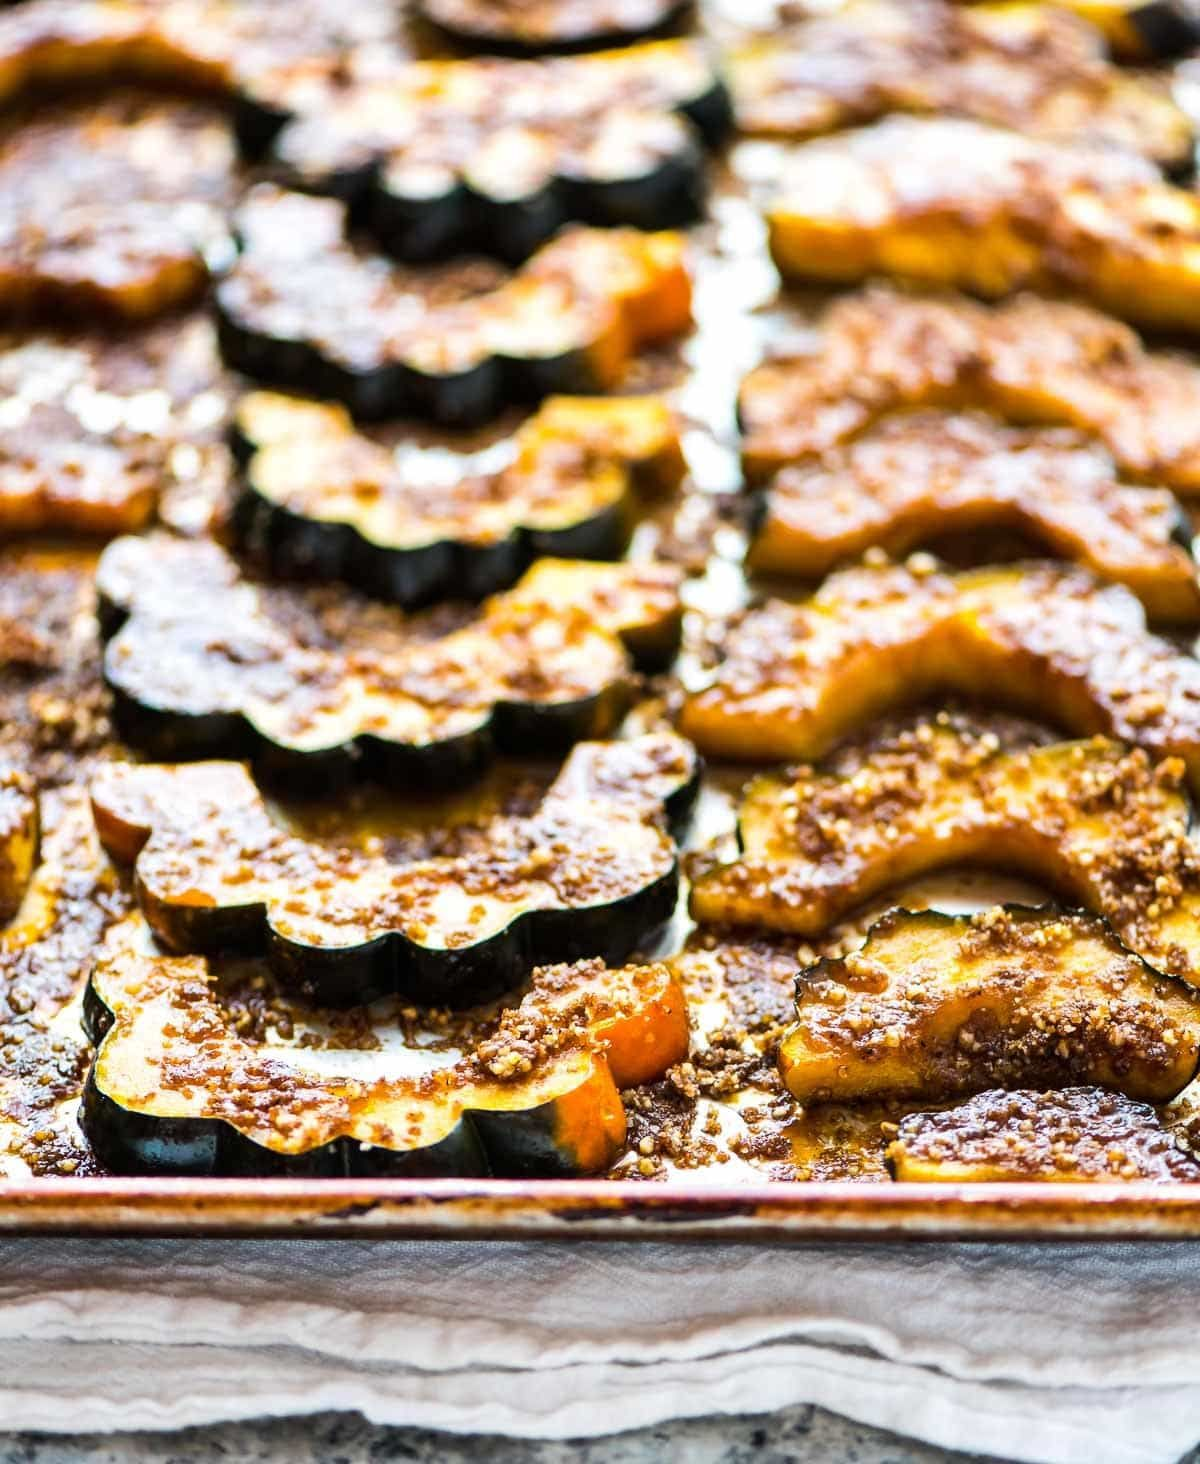 Baked Acorn Squash Slices With Brown Sugar And Pecans Simple And